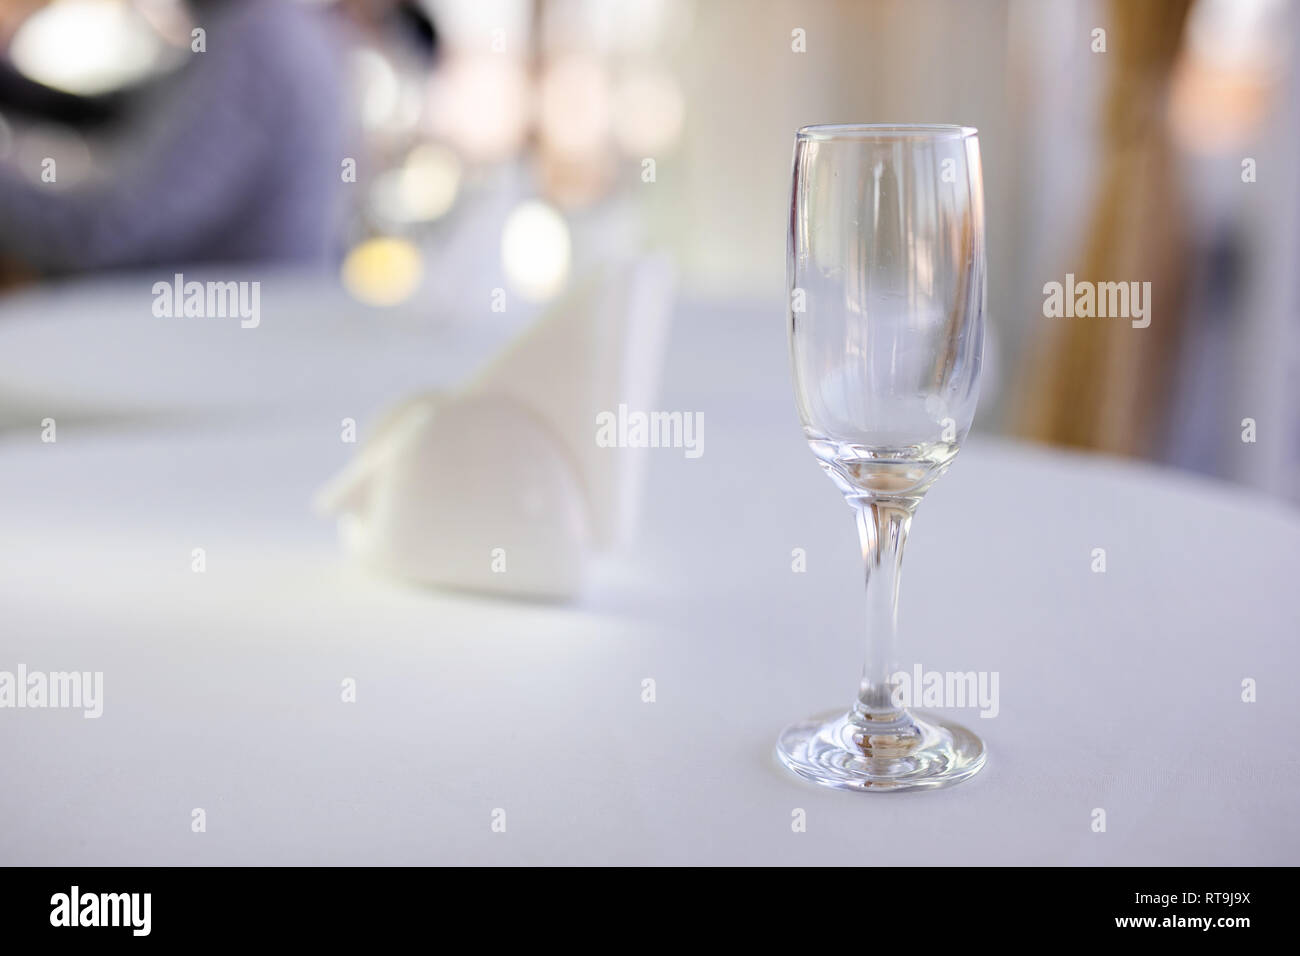 Natural light or daylight shot of modern restaurant table set for a lunch. Shallow focus on wine glass. - Stock Image